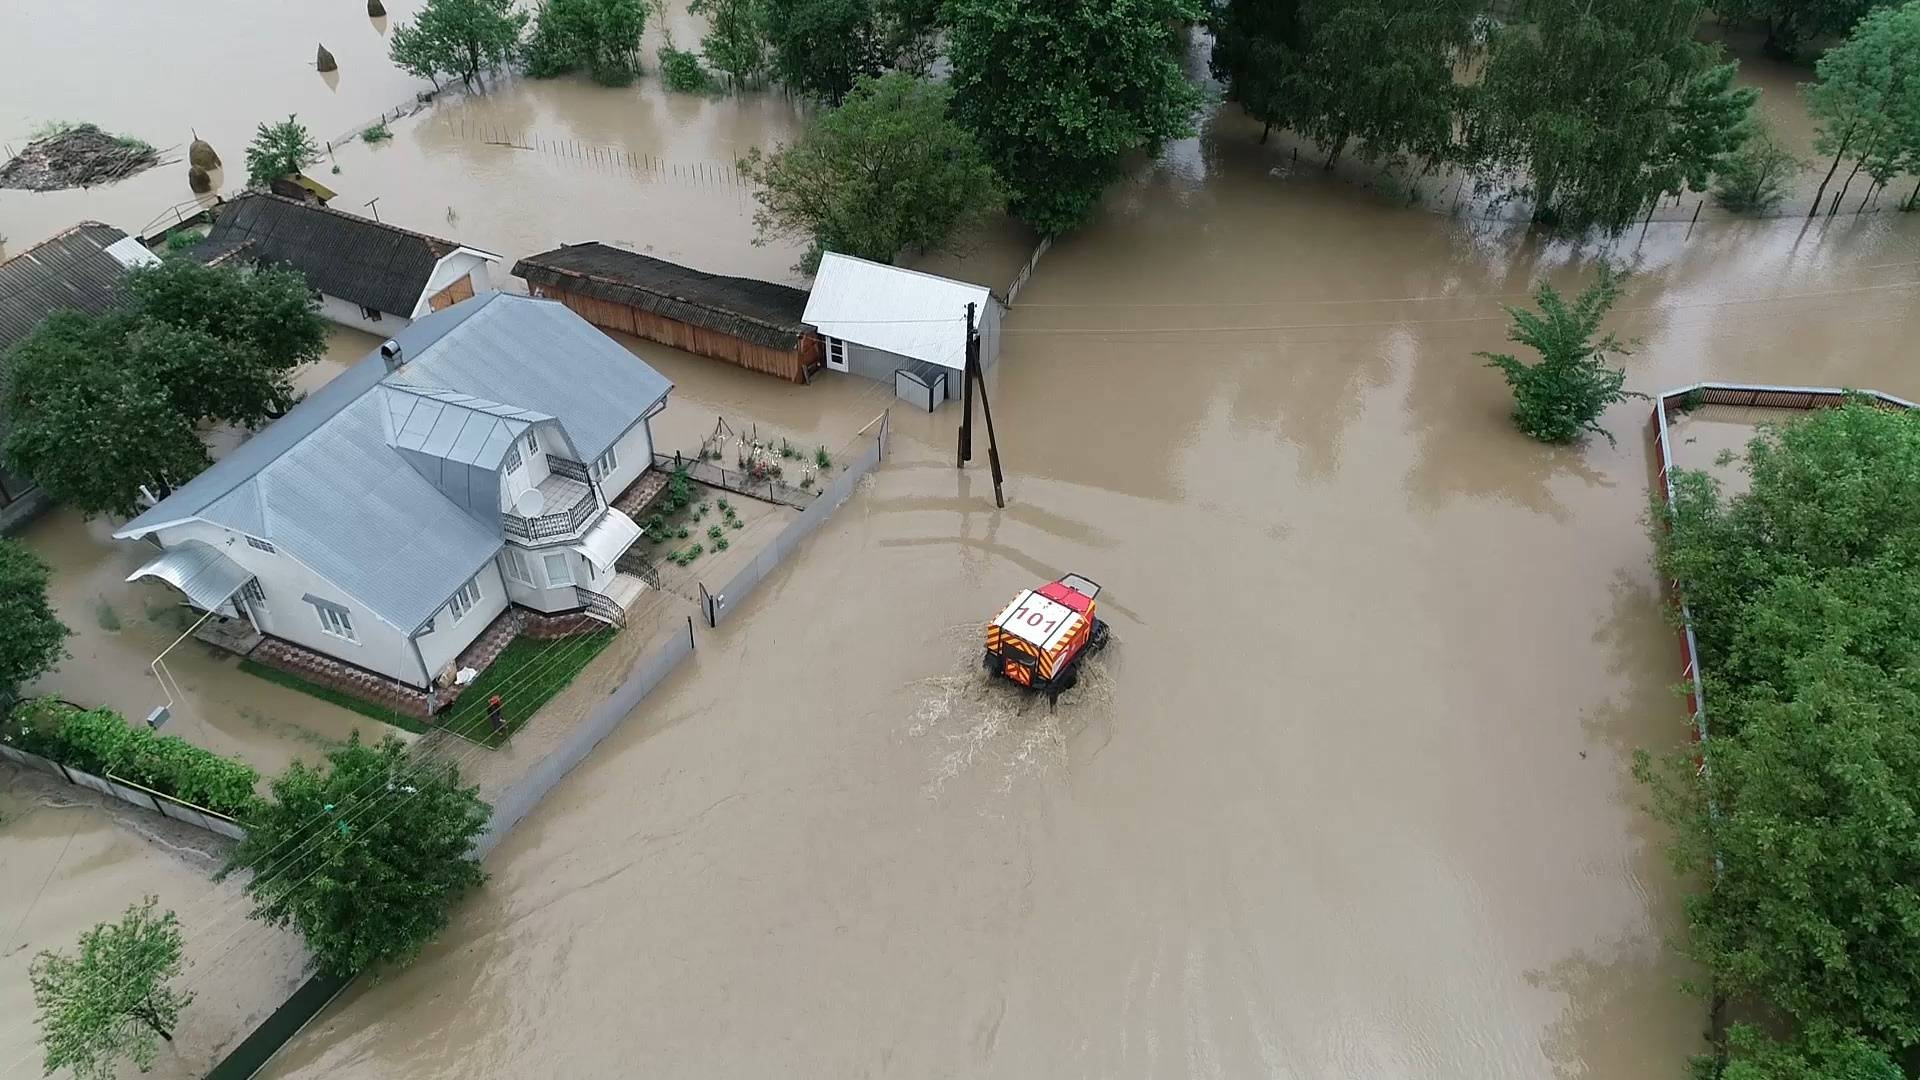 Rescuers ride inside amphibious vehicle through flooded residential area in Chernivtsi region